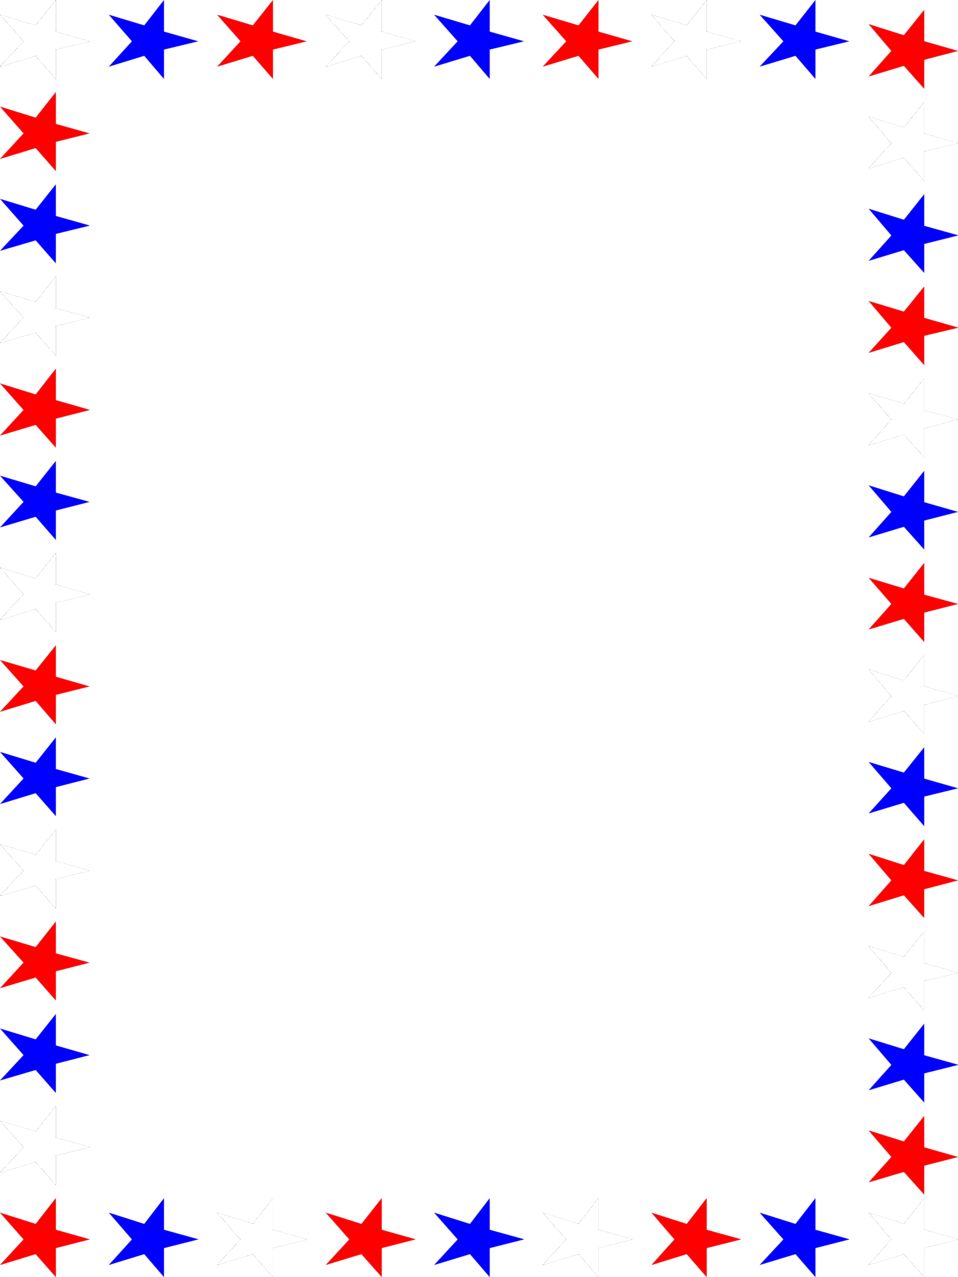 Red white and blue star border clipart freeuse download 4371-illustration-of-a-blank-frame-border-of-red-white-and-blue ... freeuse download